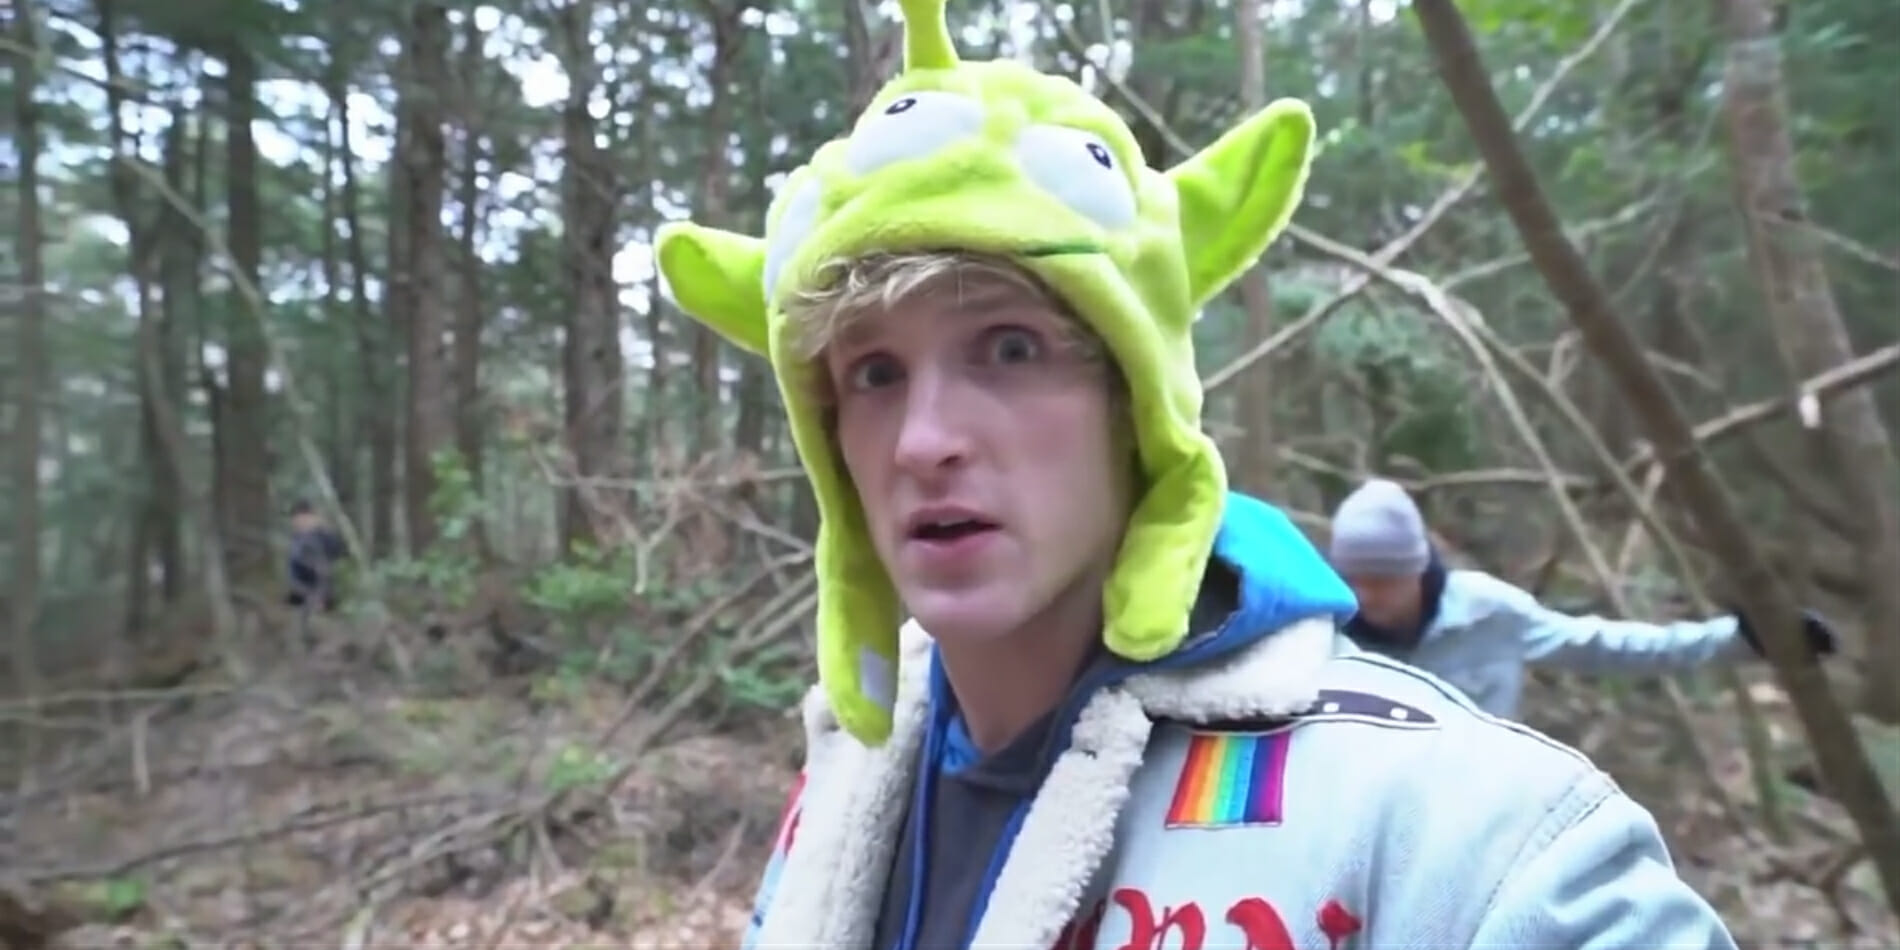 Backlash emerged in early 2018 against Logan Paul's insensitive video depicting a man's suicide in Aokigahara.